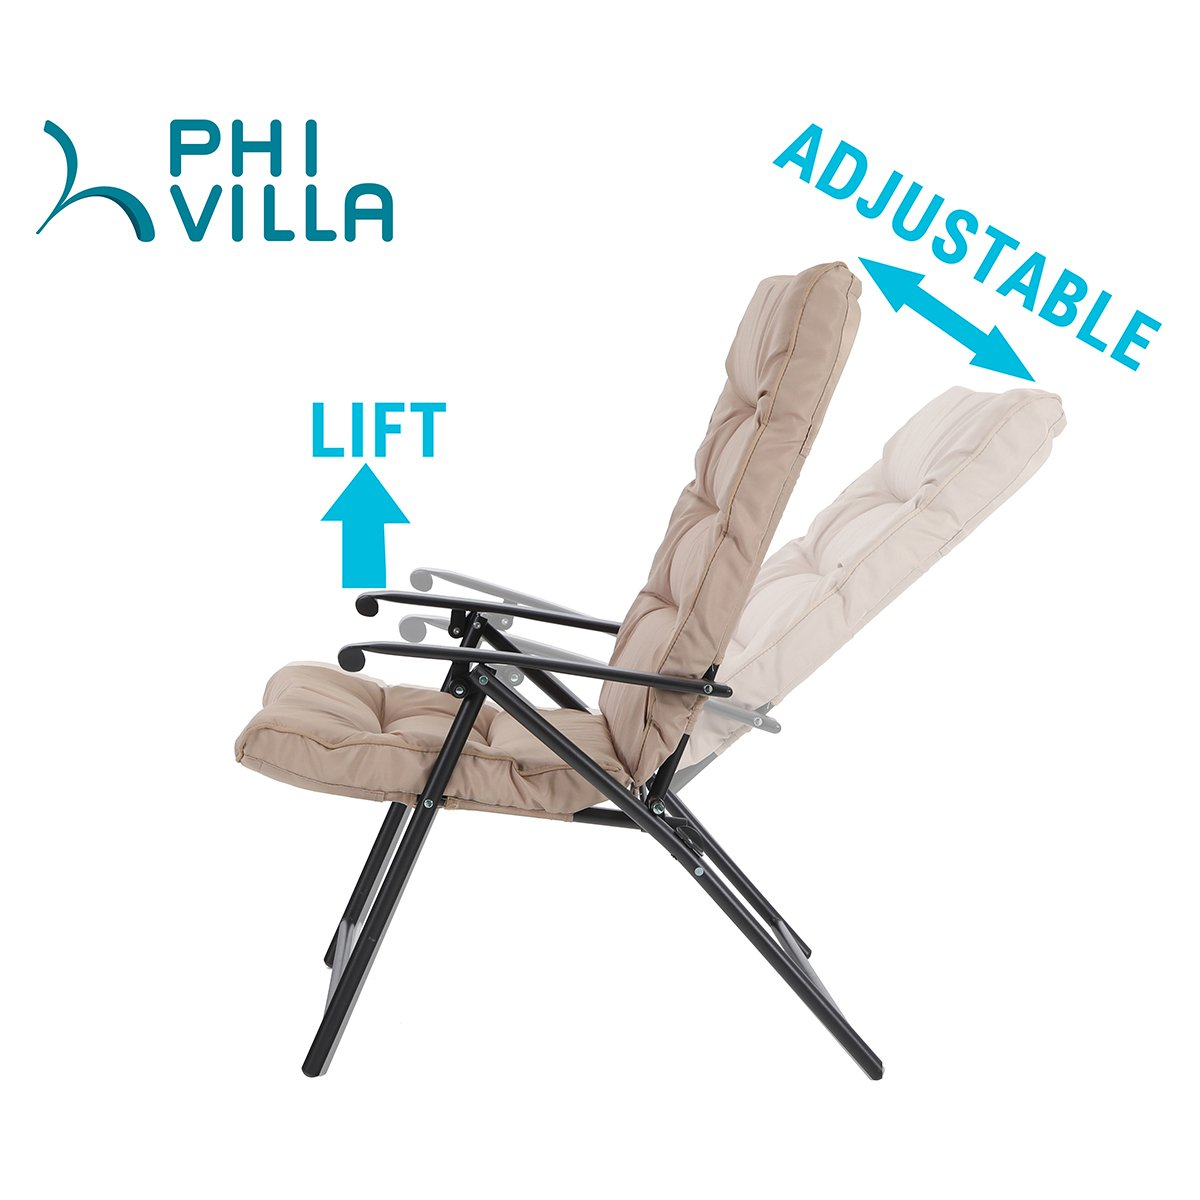 PHI VILLA Patio 3 PC Padded Folding Chair Set Adjustable Reclining 2 Position, Beige by PHI VILLA (Image #4)